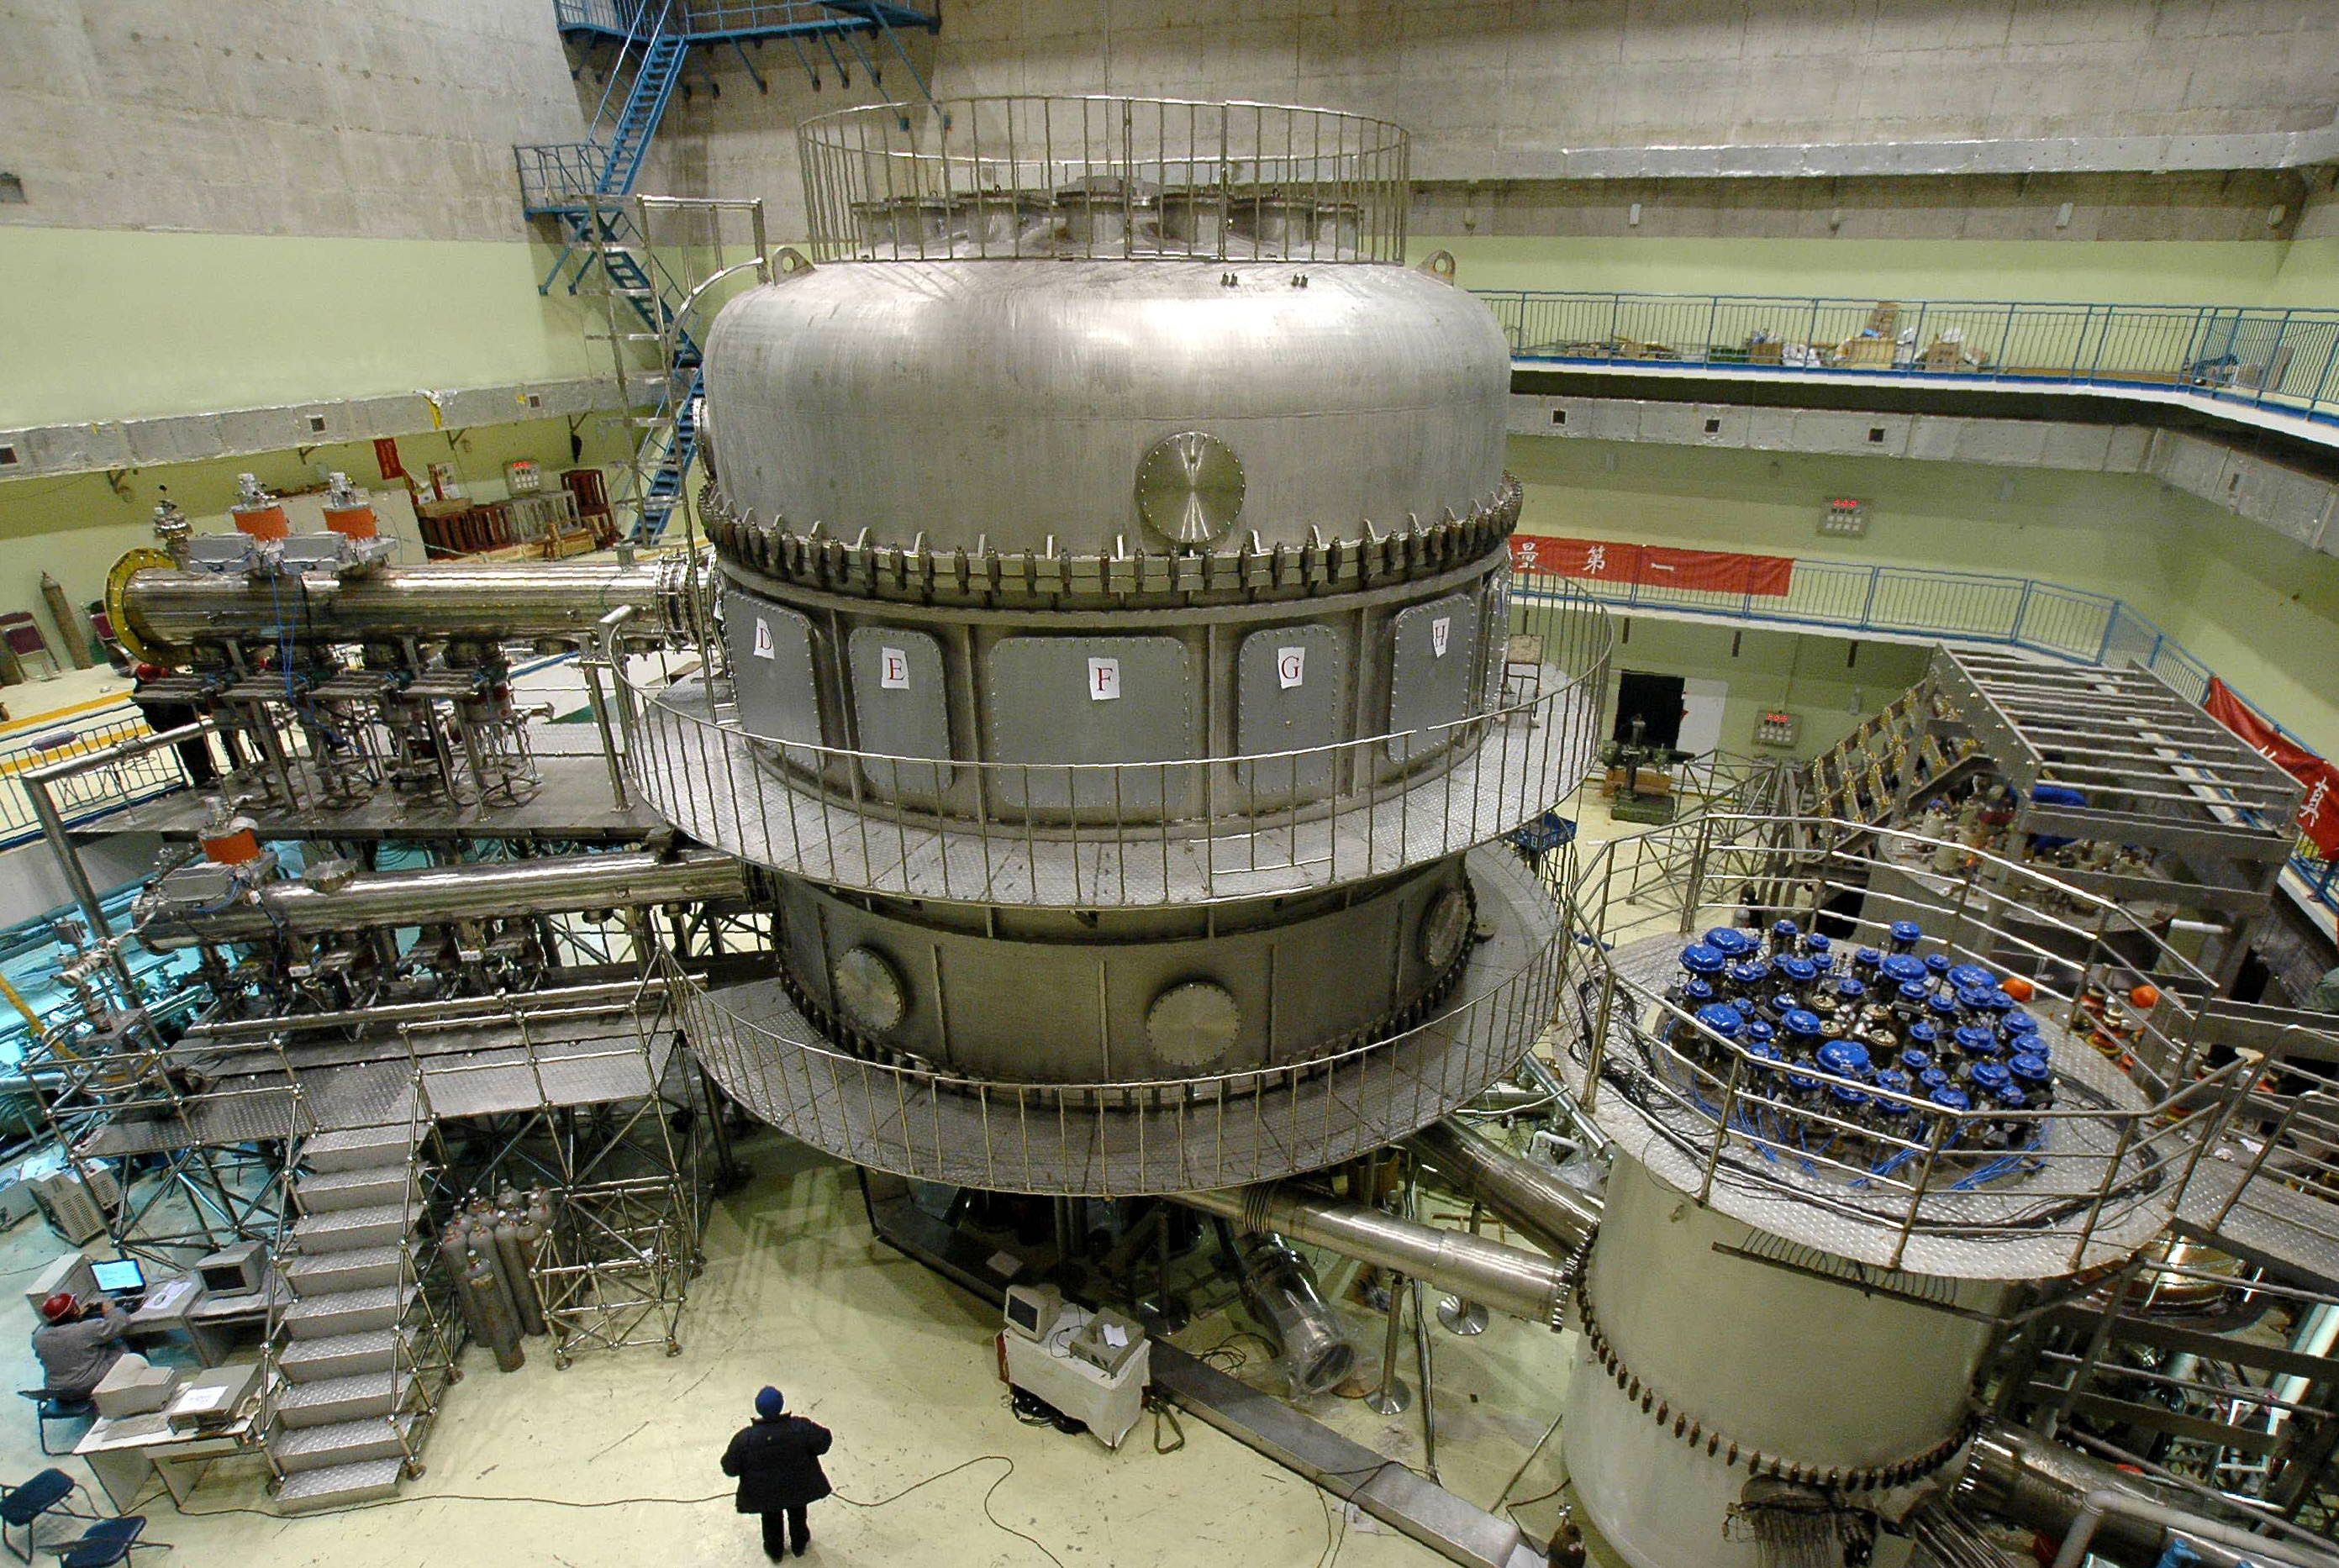 Resultado de imagem para Experimental Advanced Superconducting Tokamak (EAST)